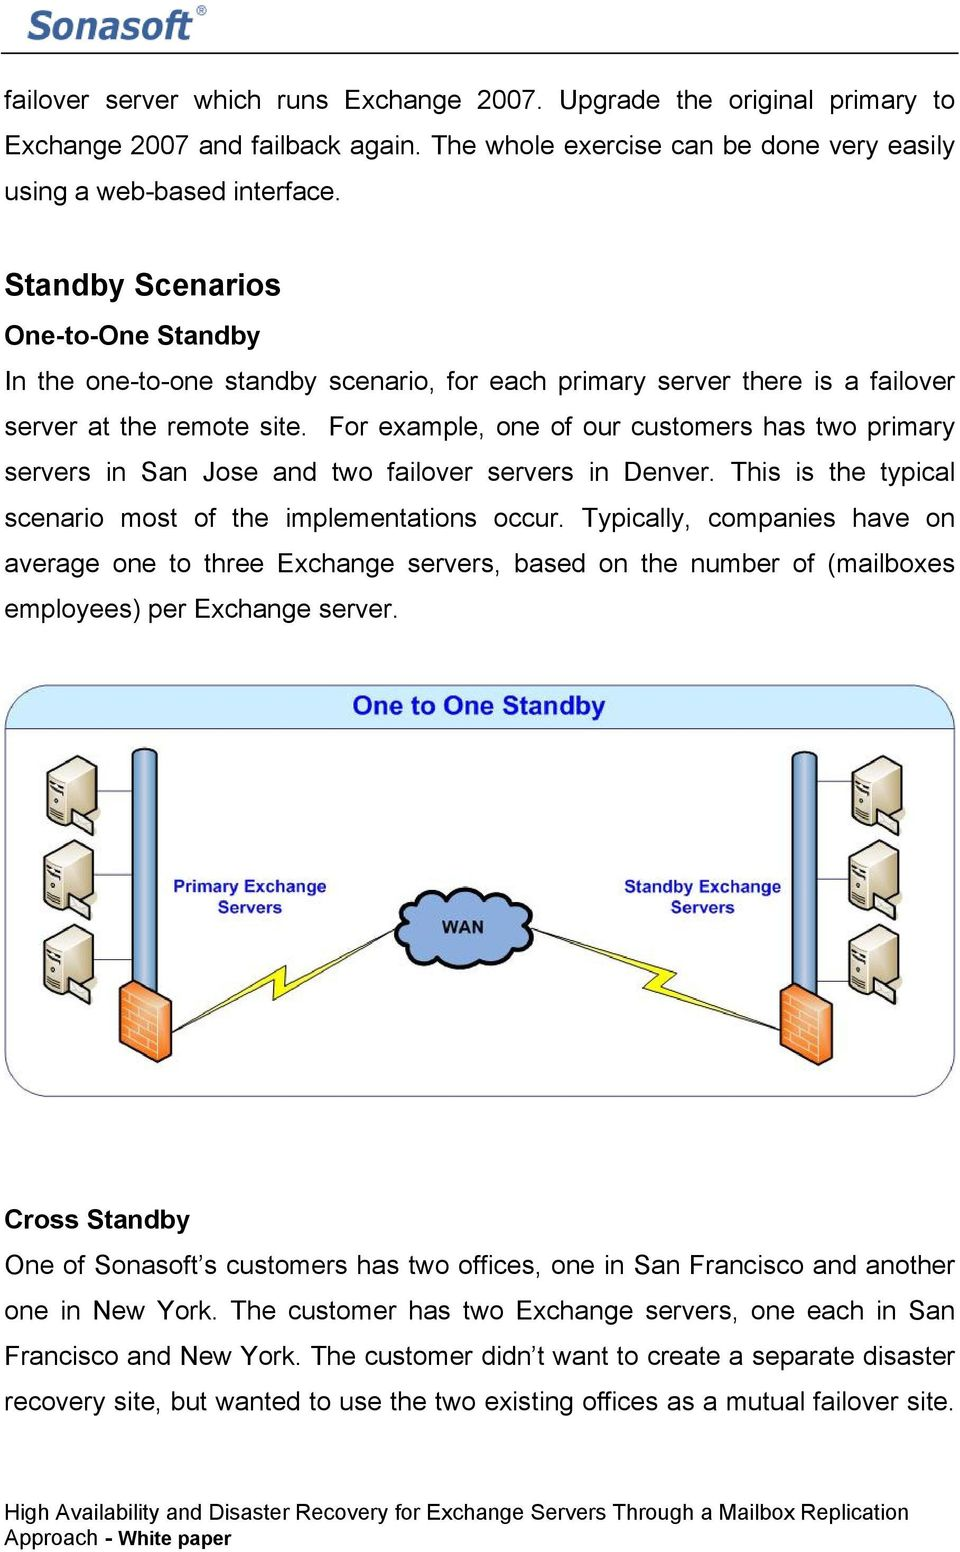 For example, one of our customers has two primary servers in San Jose and two failover servers in Denver. This is the typical scenario most of the implementations occur.